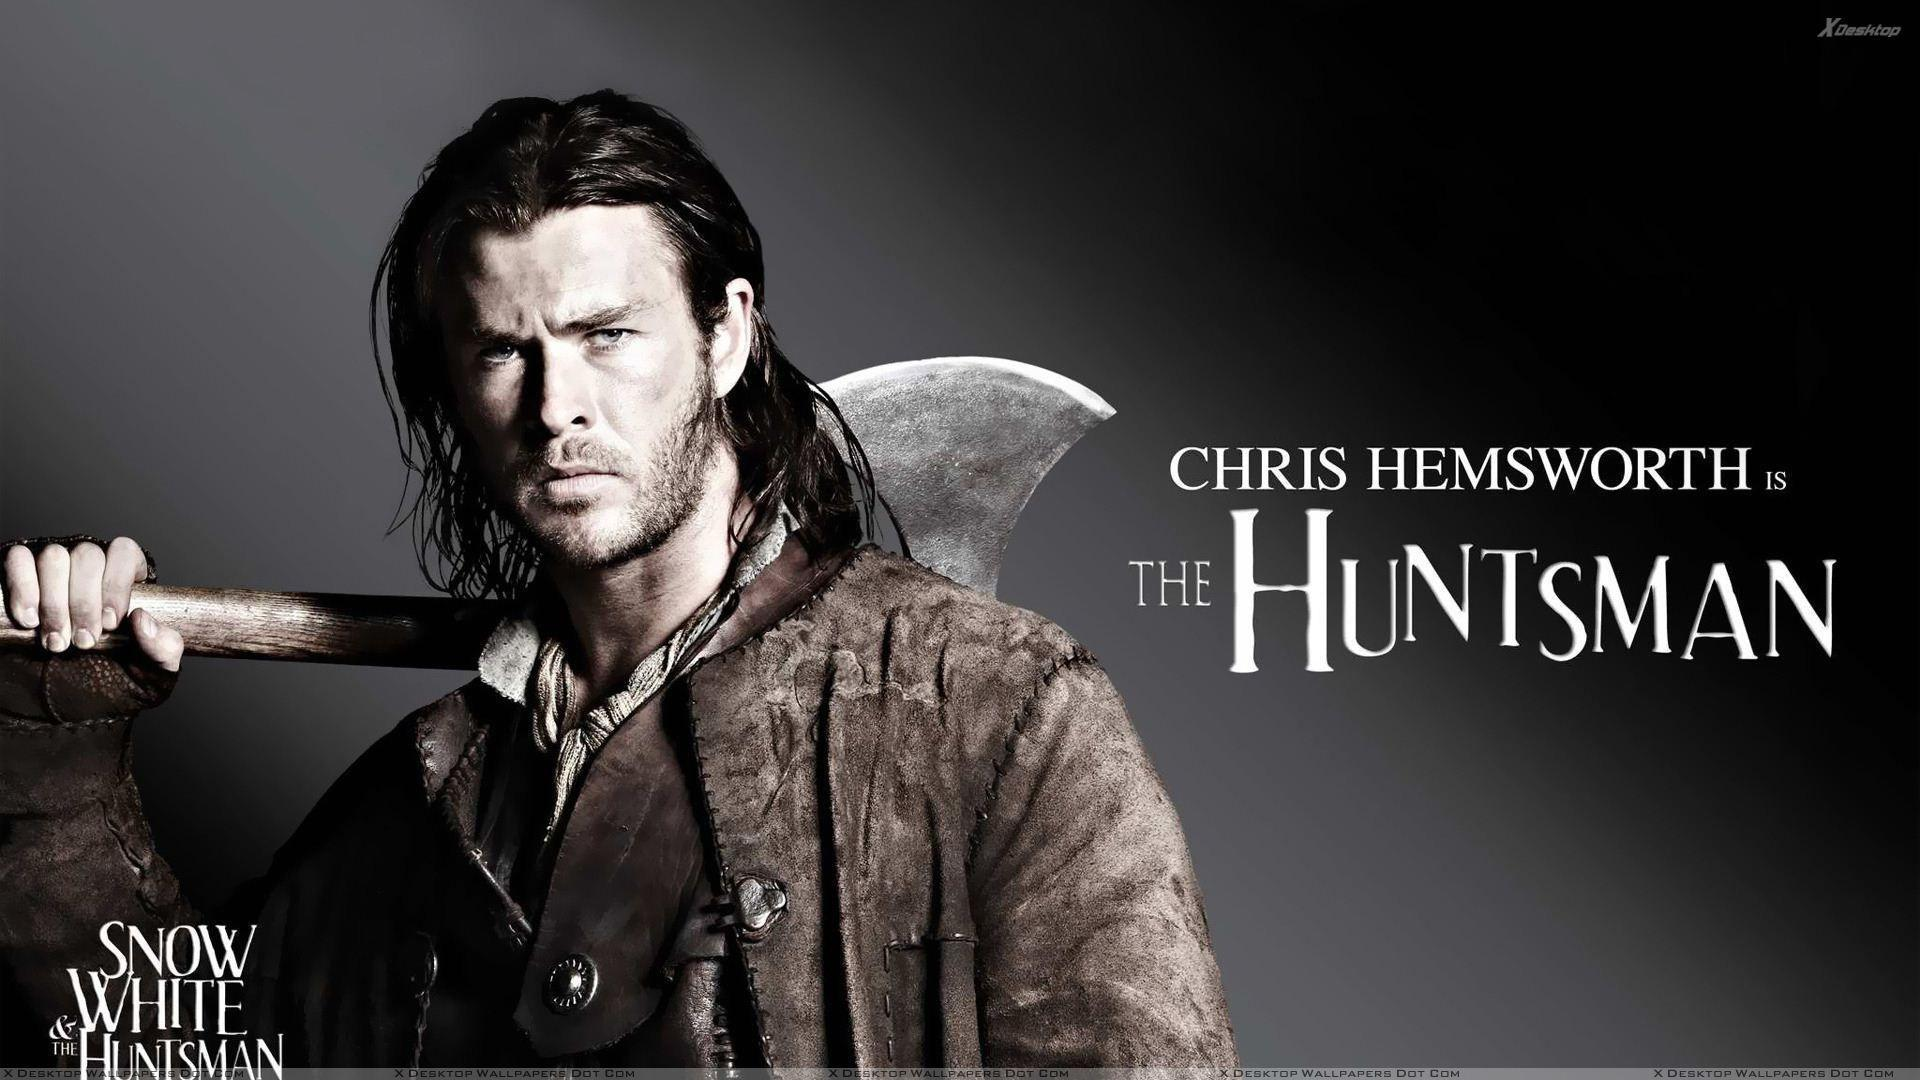 Chris Hemsworth Wallpapers, Photos & Image in HD